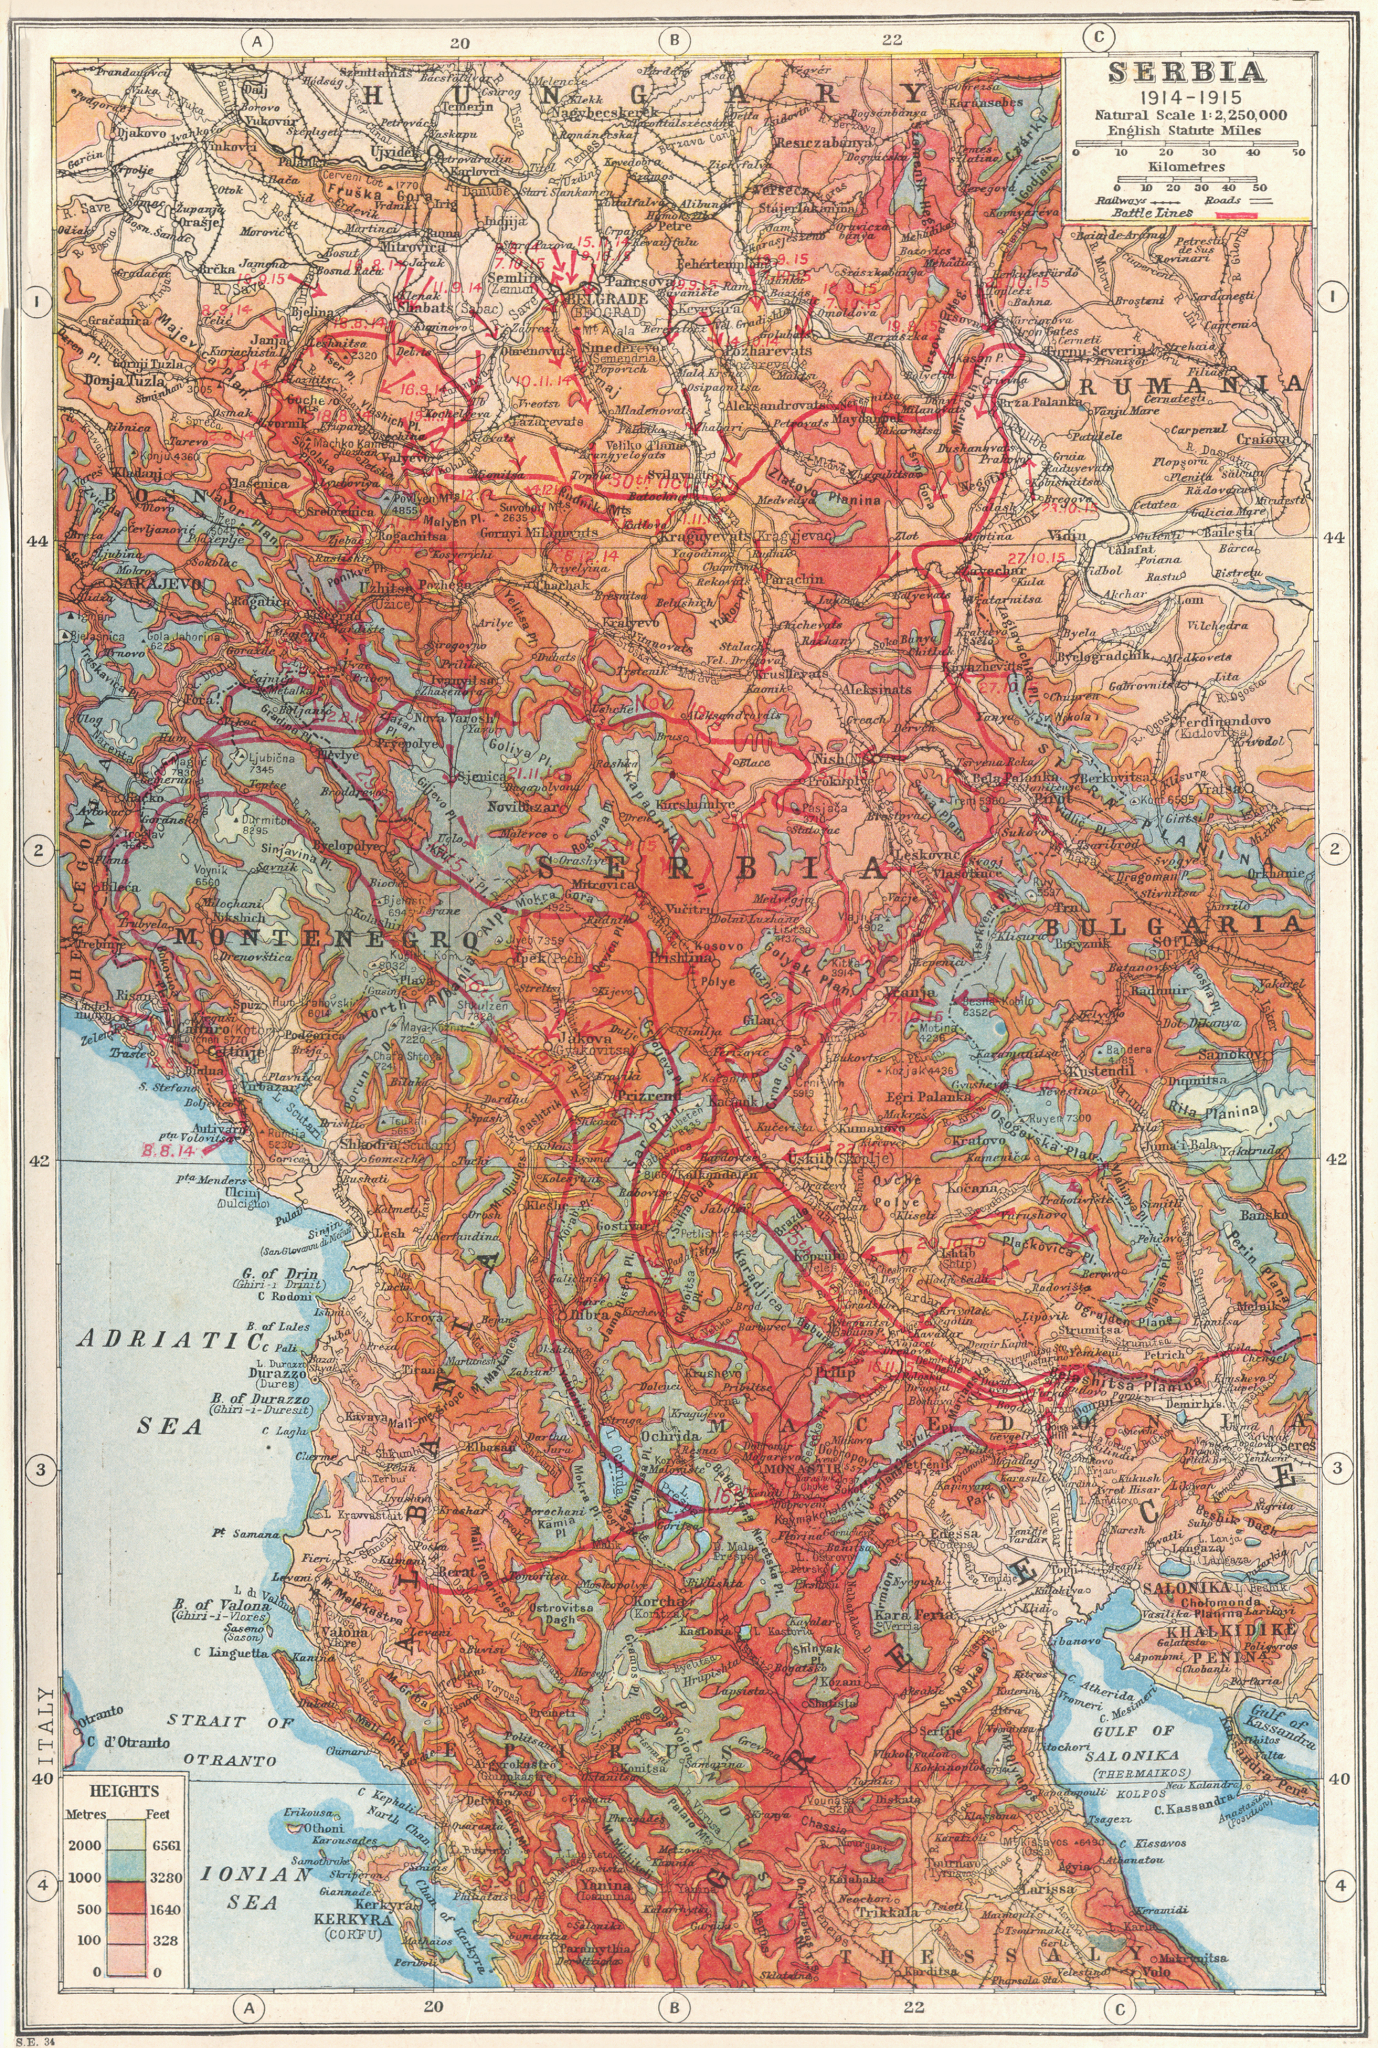 SERBIA. Macedonia Montenegro 1914-1915 battle lines. First World War  1920 map